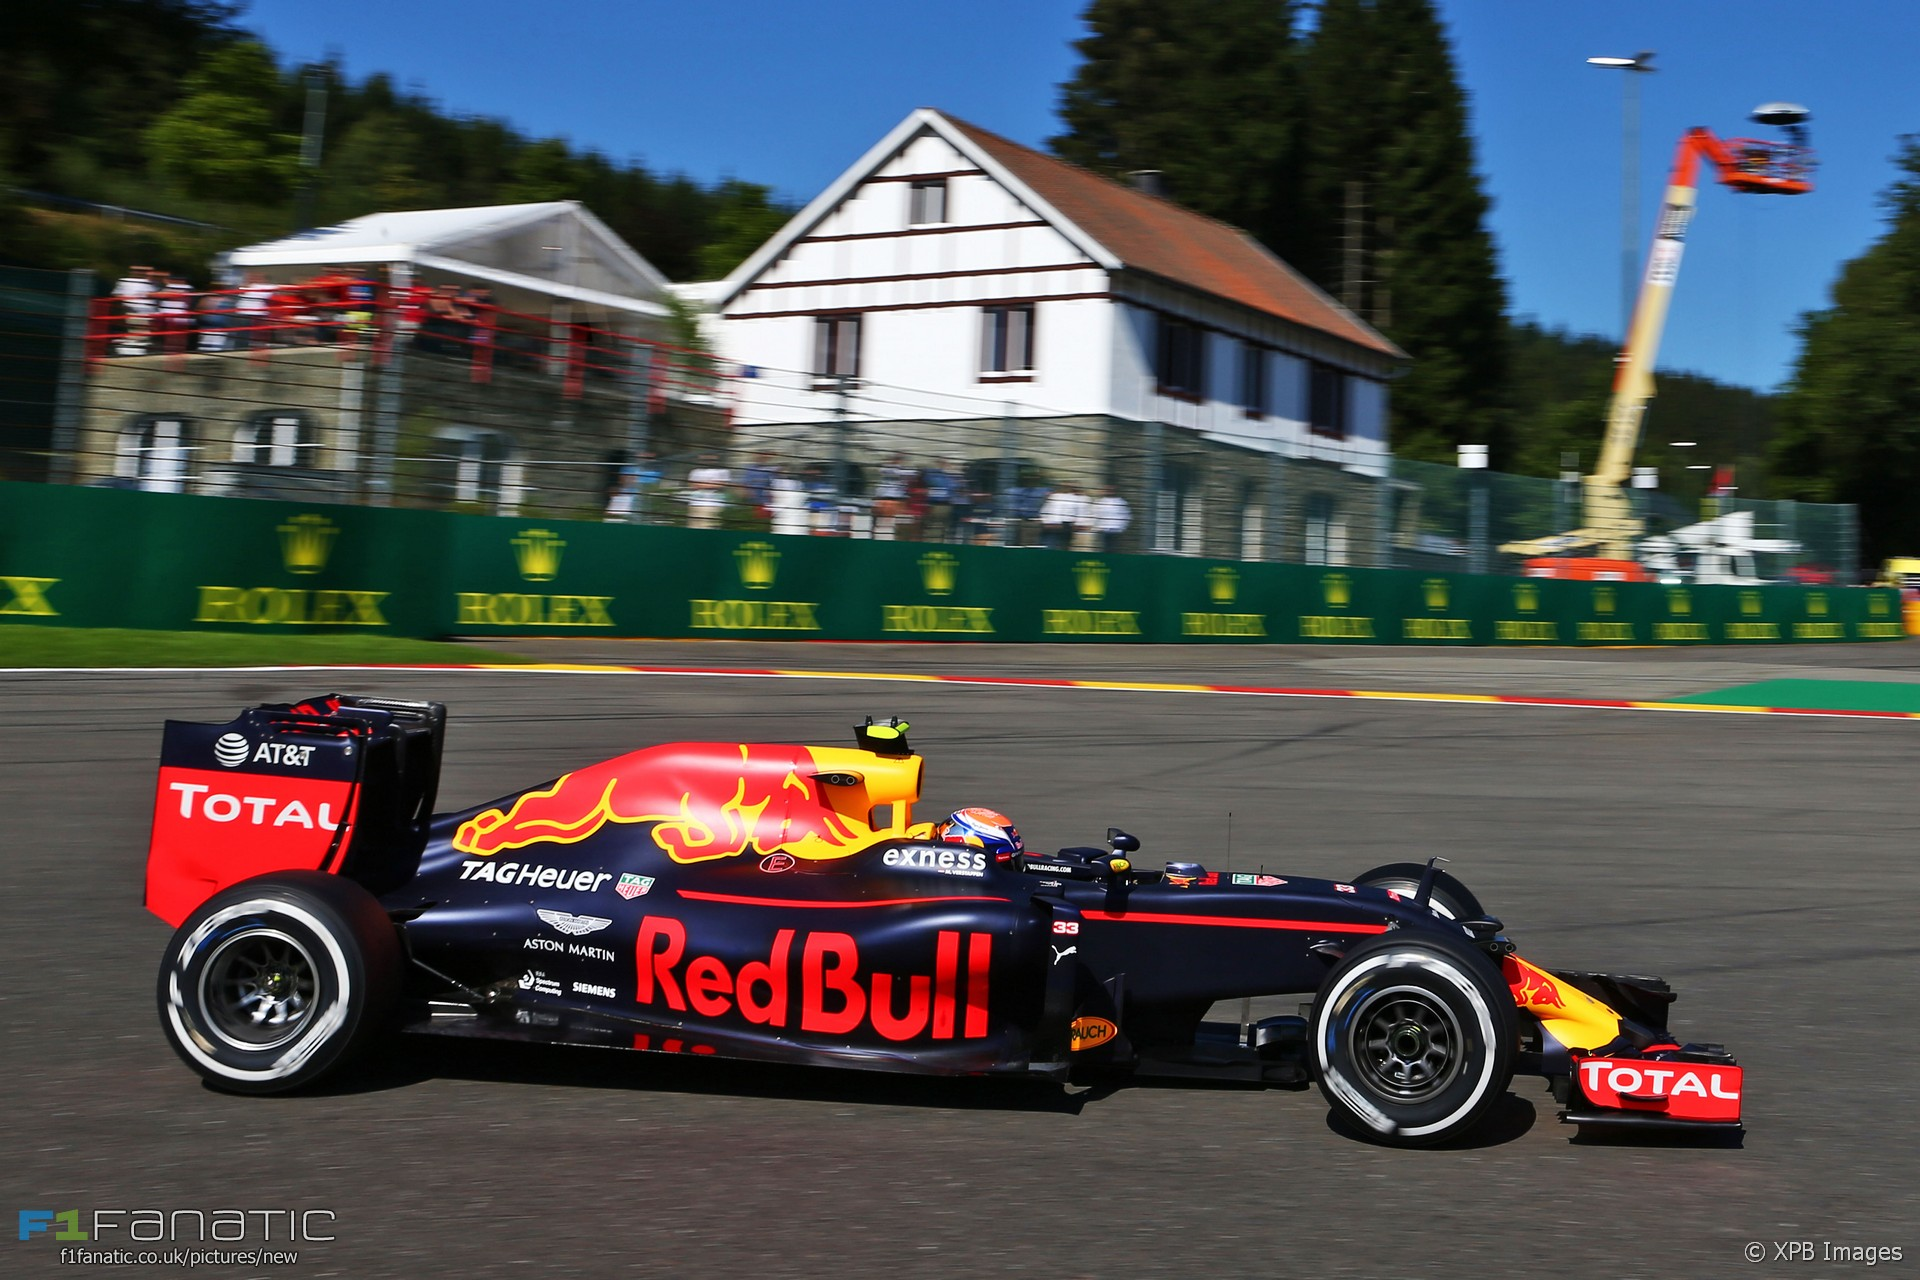 Verstappen leads Red Bull one-two in second practice · F1 Fanatic